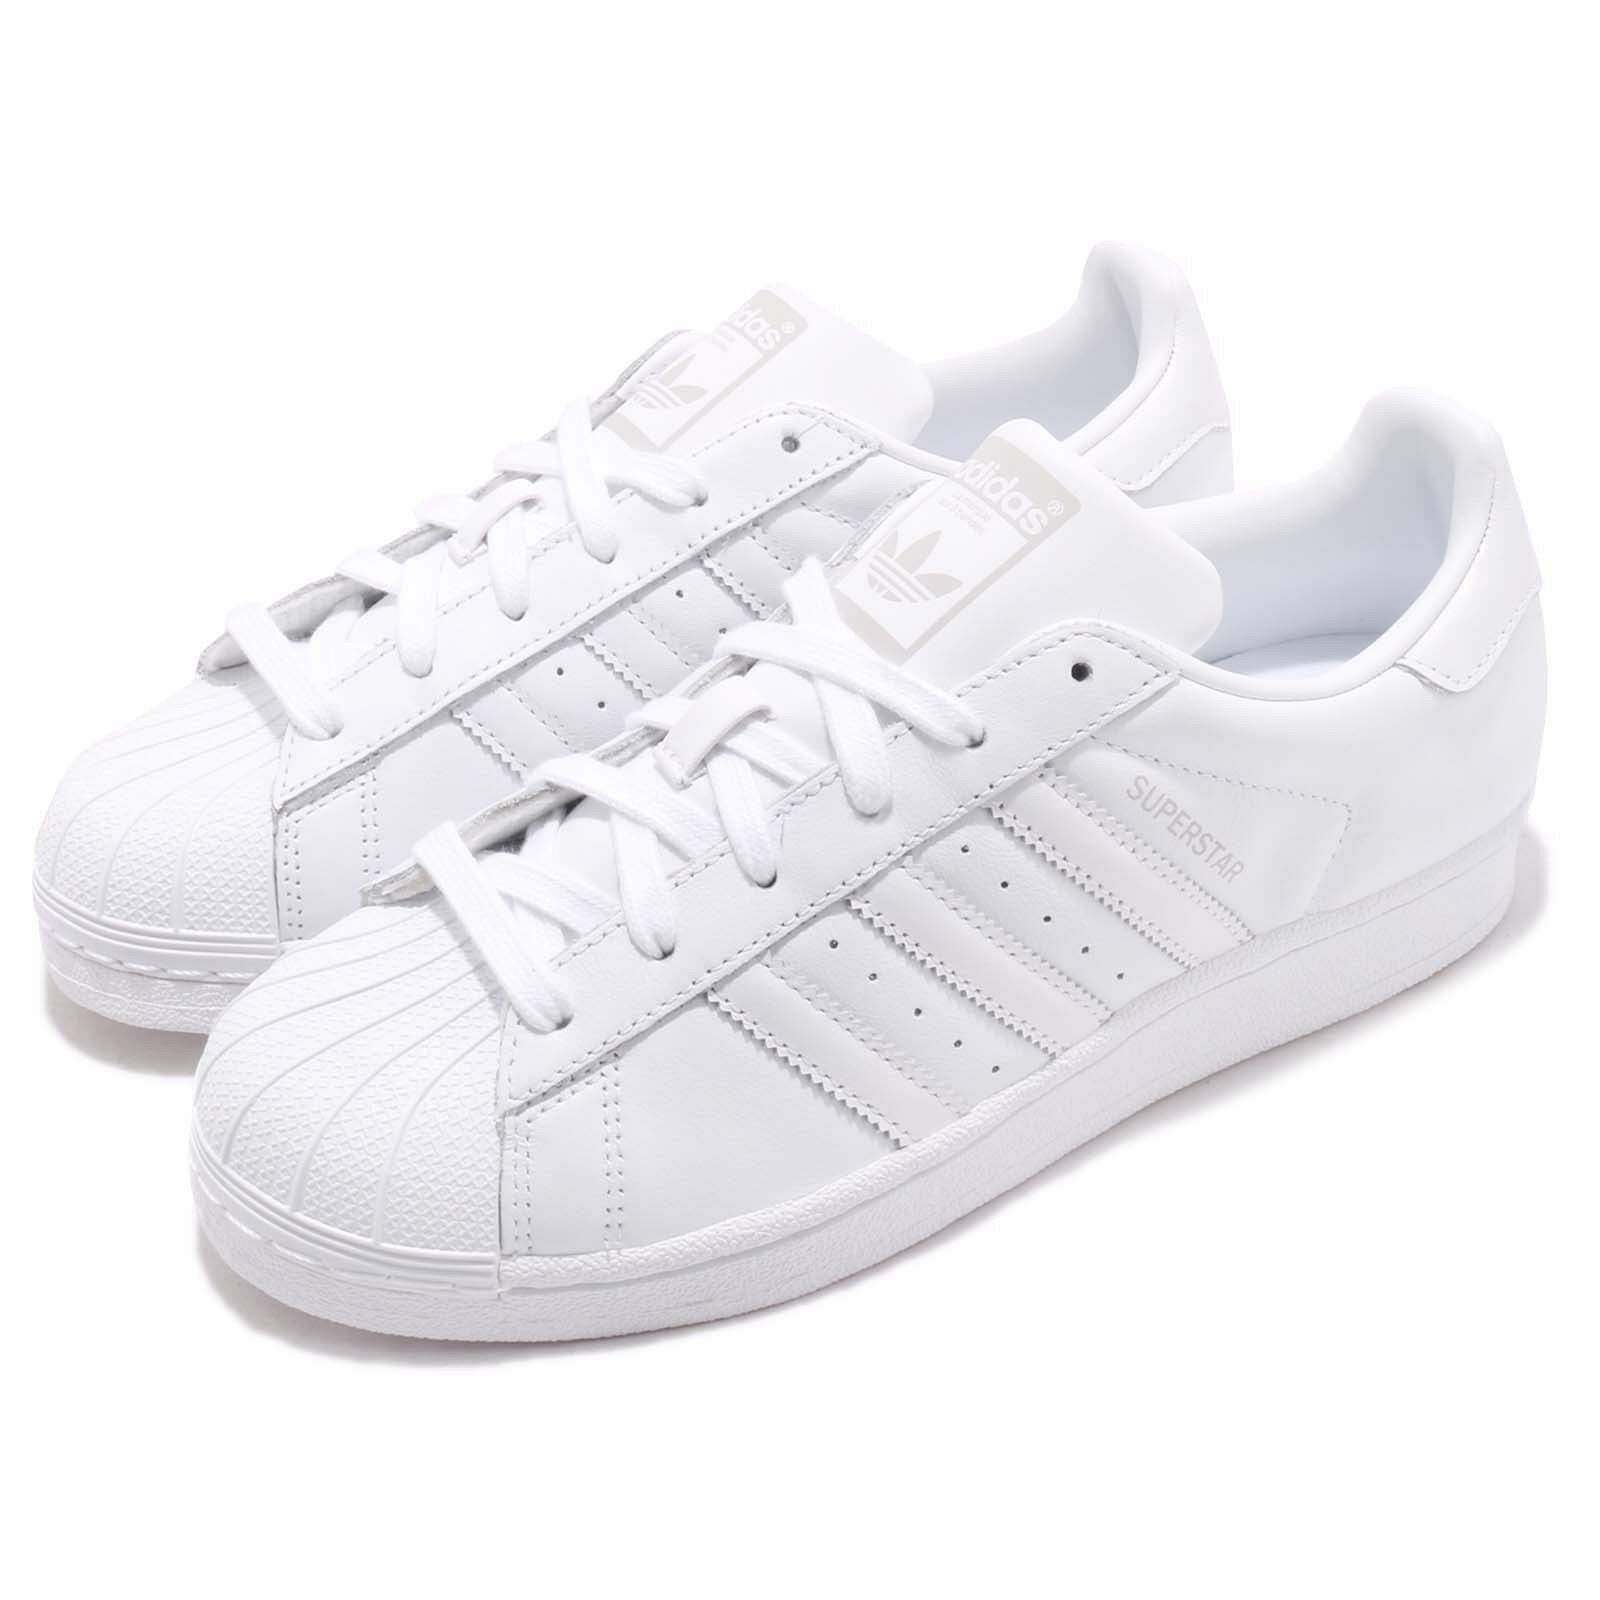 Adidas Originals Superstar W White Grey Women Casual shoes Sneakers AQ1214